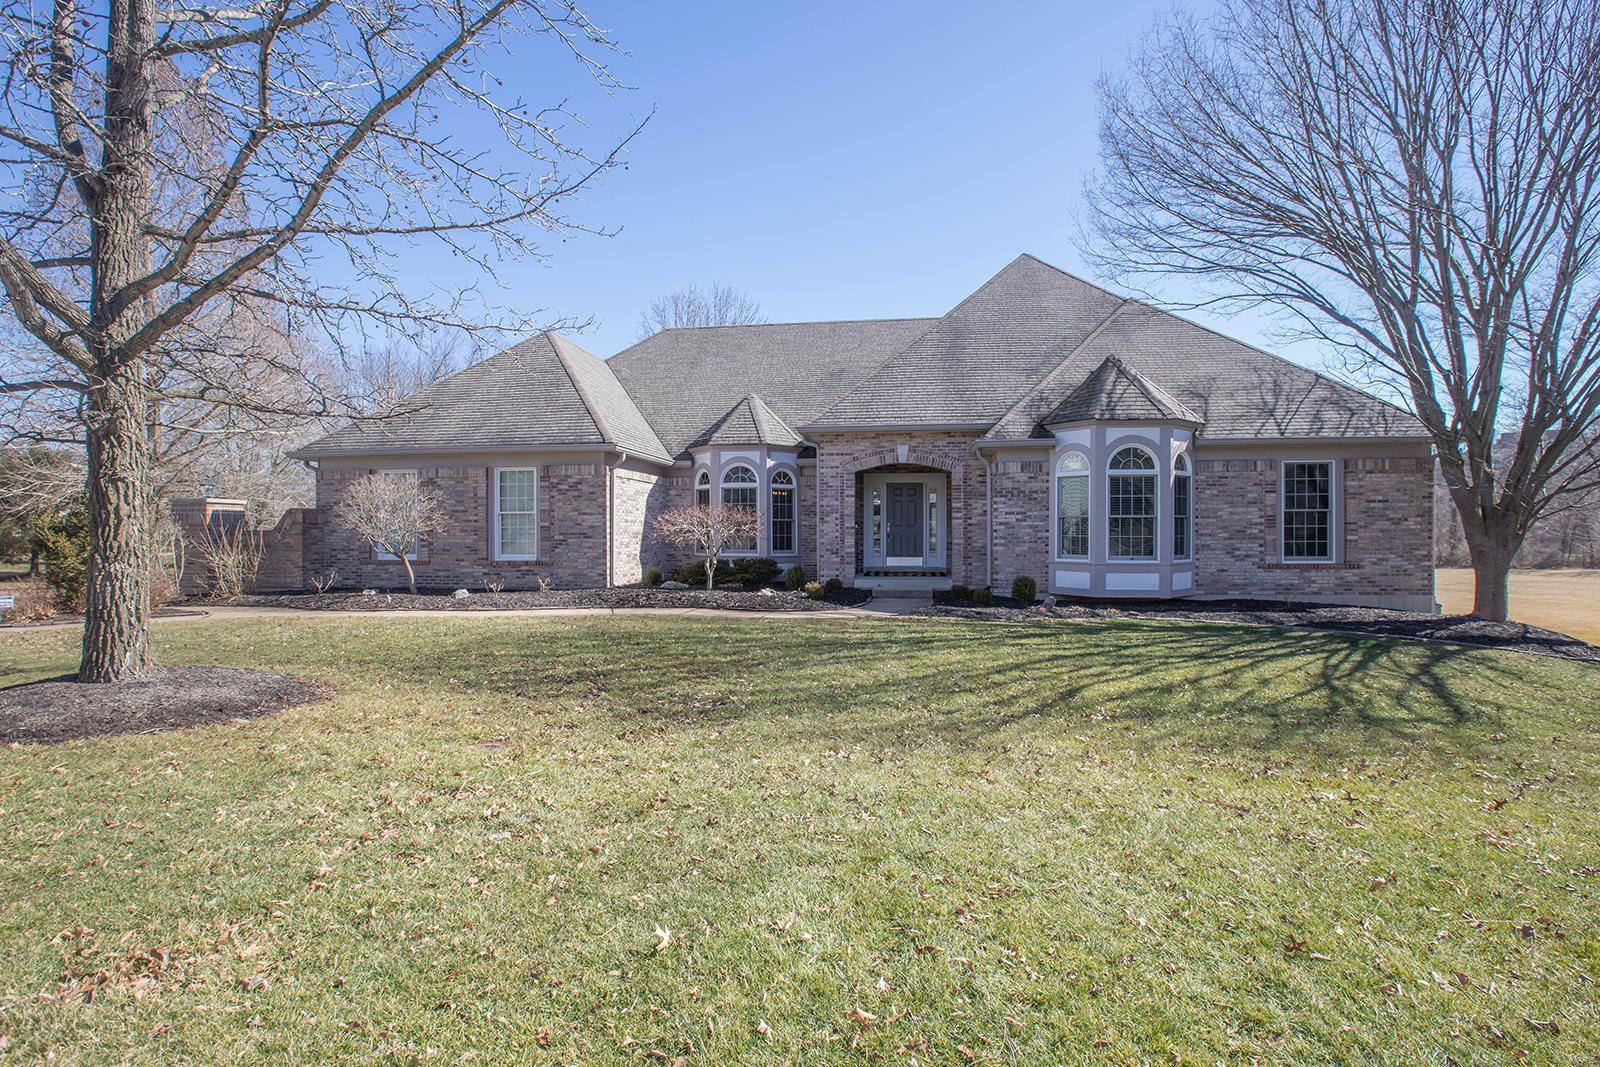 17401 Emily Way Court Property Photo - Wildwood, MO real estate listing